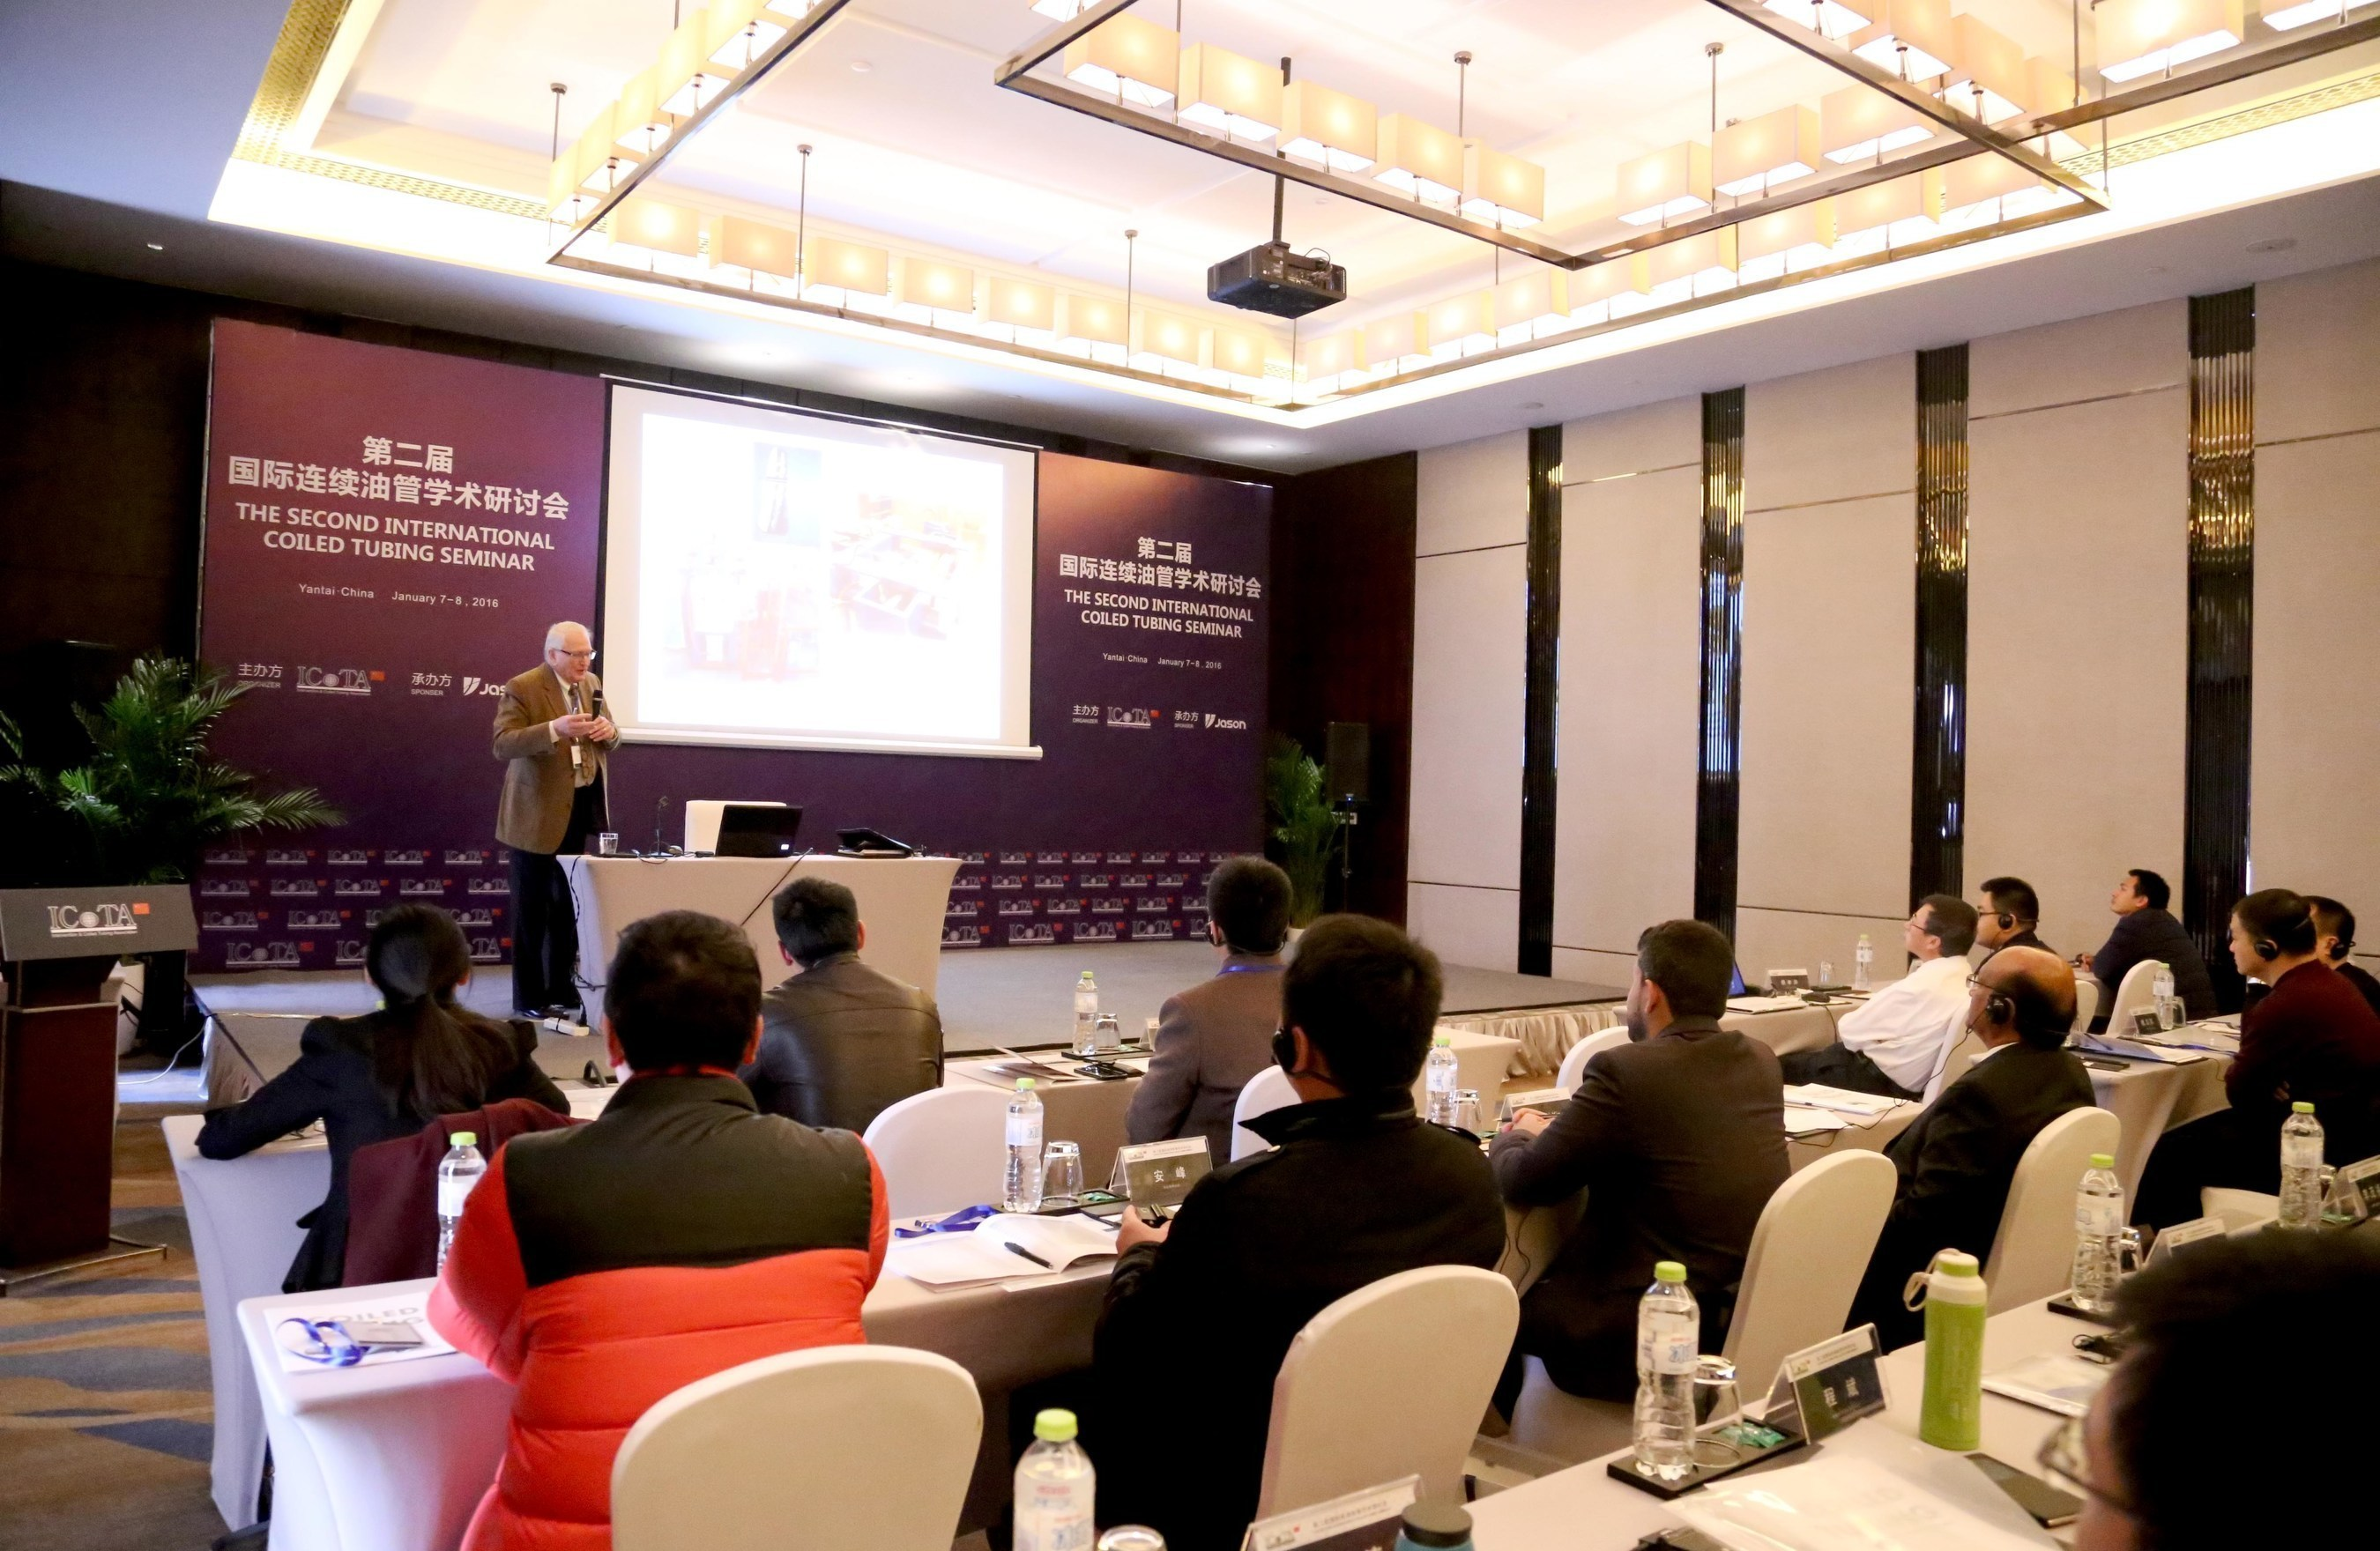 ICoTA China Chapter Held the Second International Coiled Tubing Seminar in Yantai